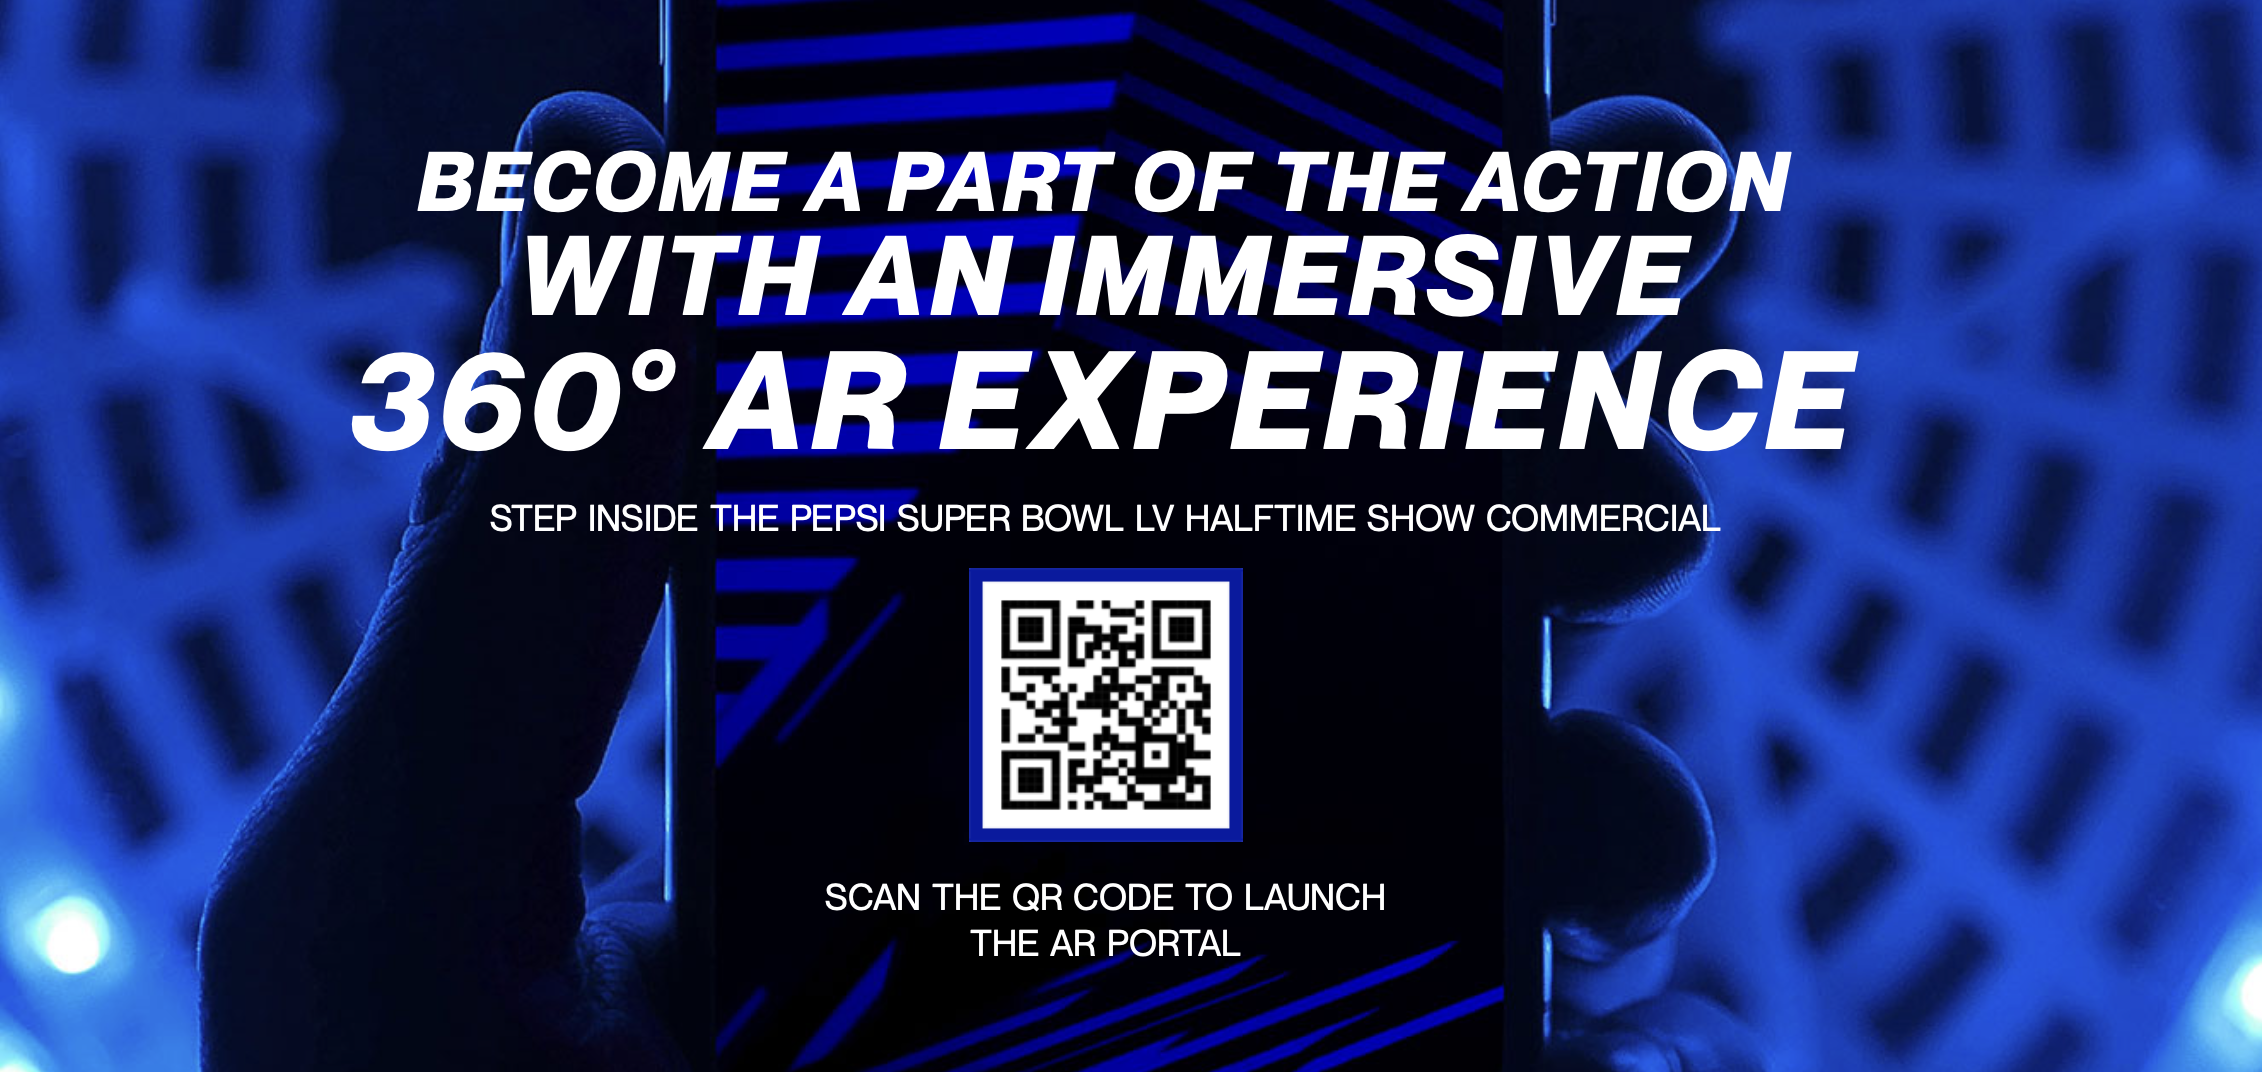 How to watch Super Bowl LV free halftime show – 360-degree AR experience